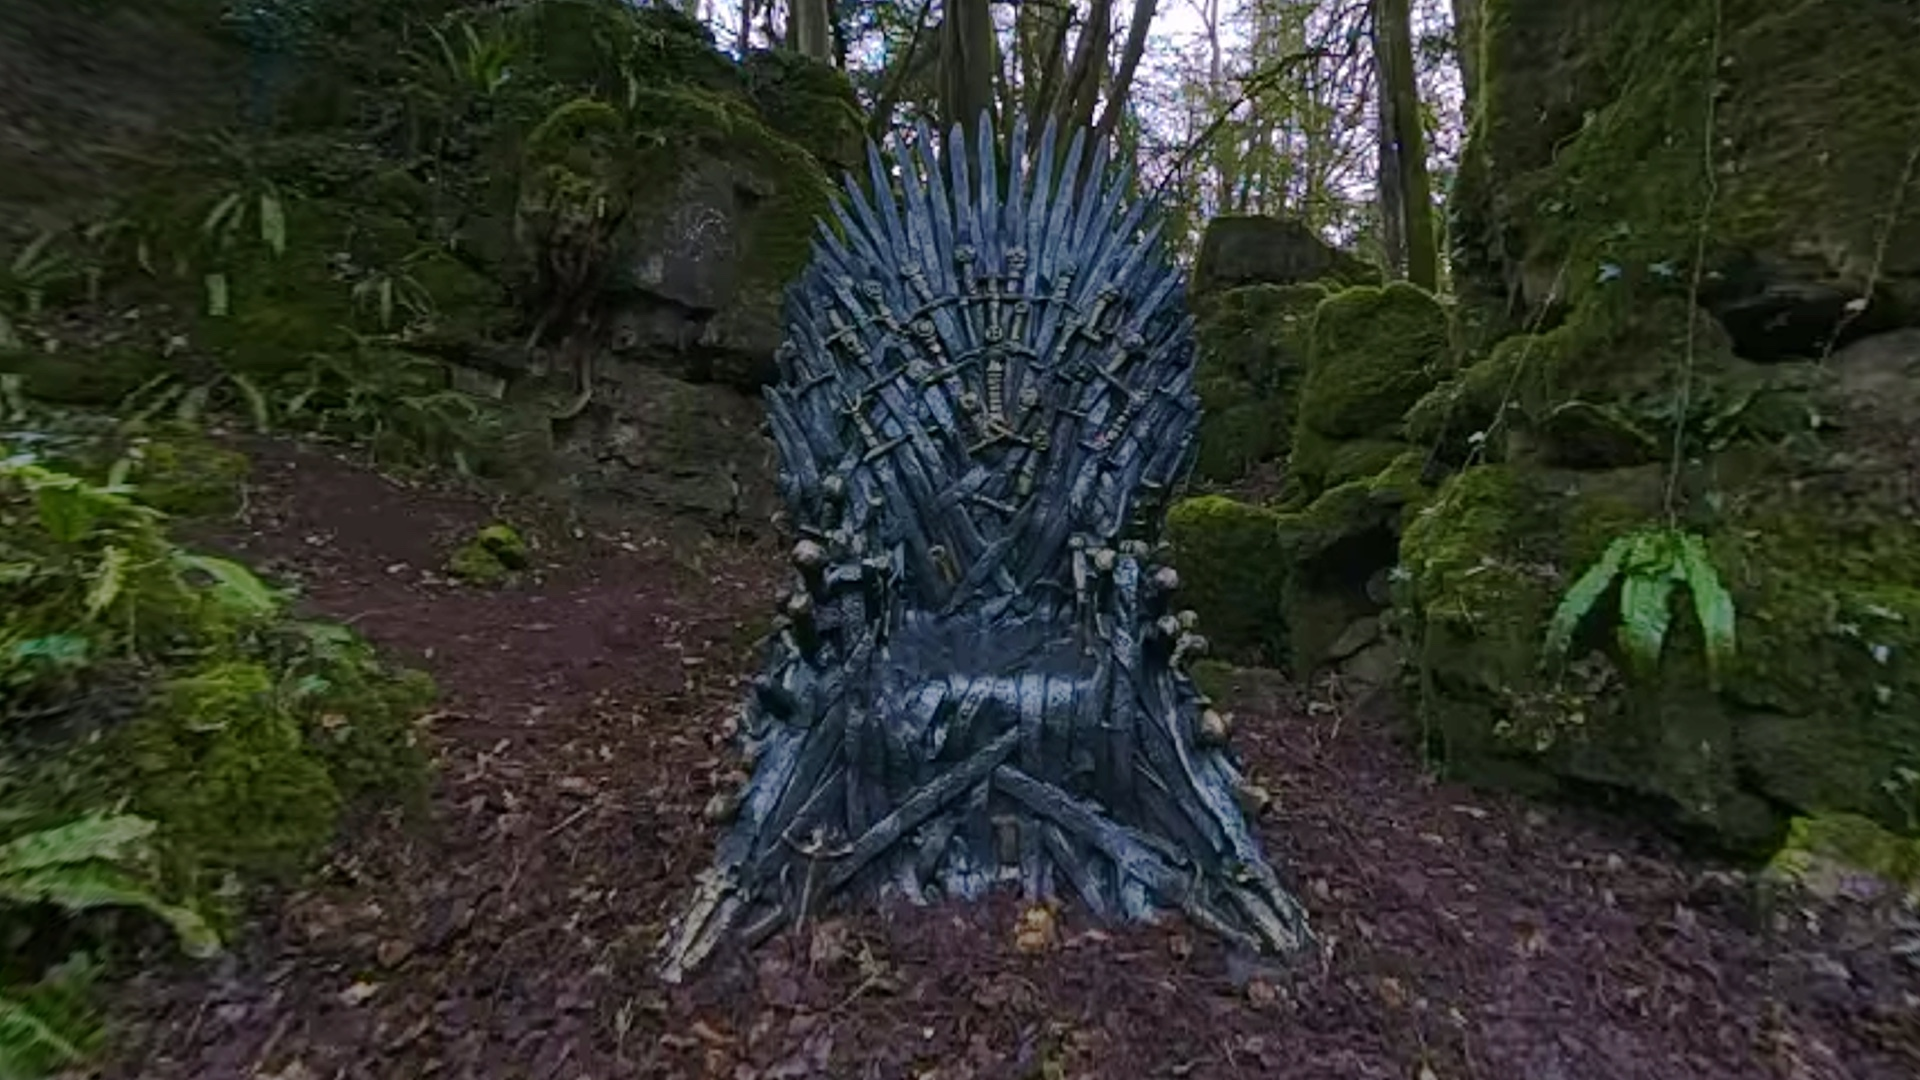 hbo-has-placed-six-iron-thrones-around-the-world-for-game-of-thrones-fans-to-find-social.jpg